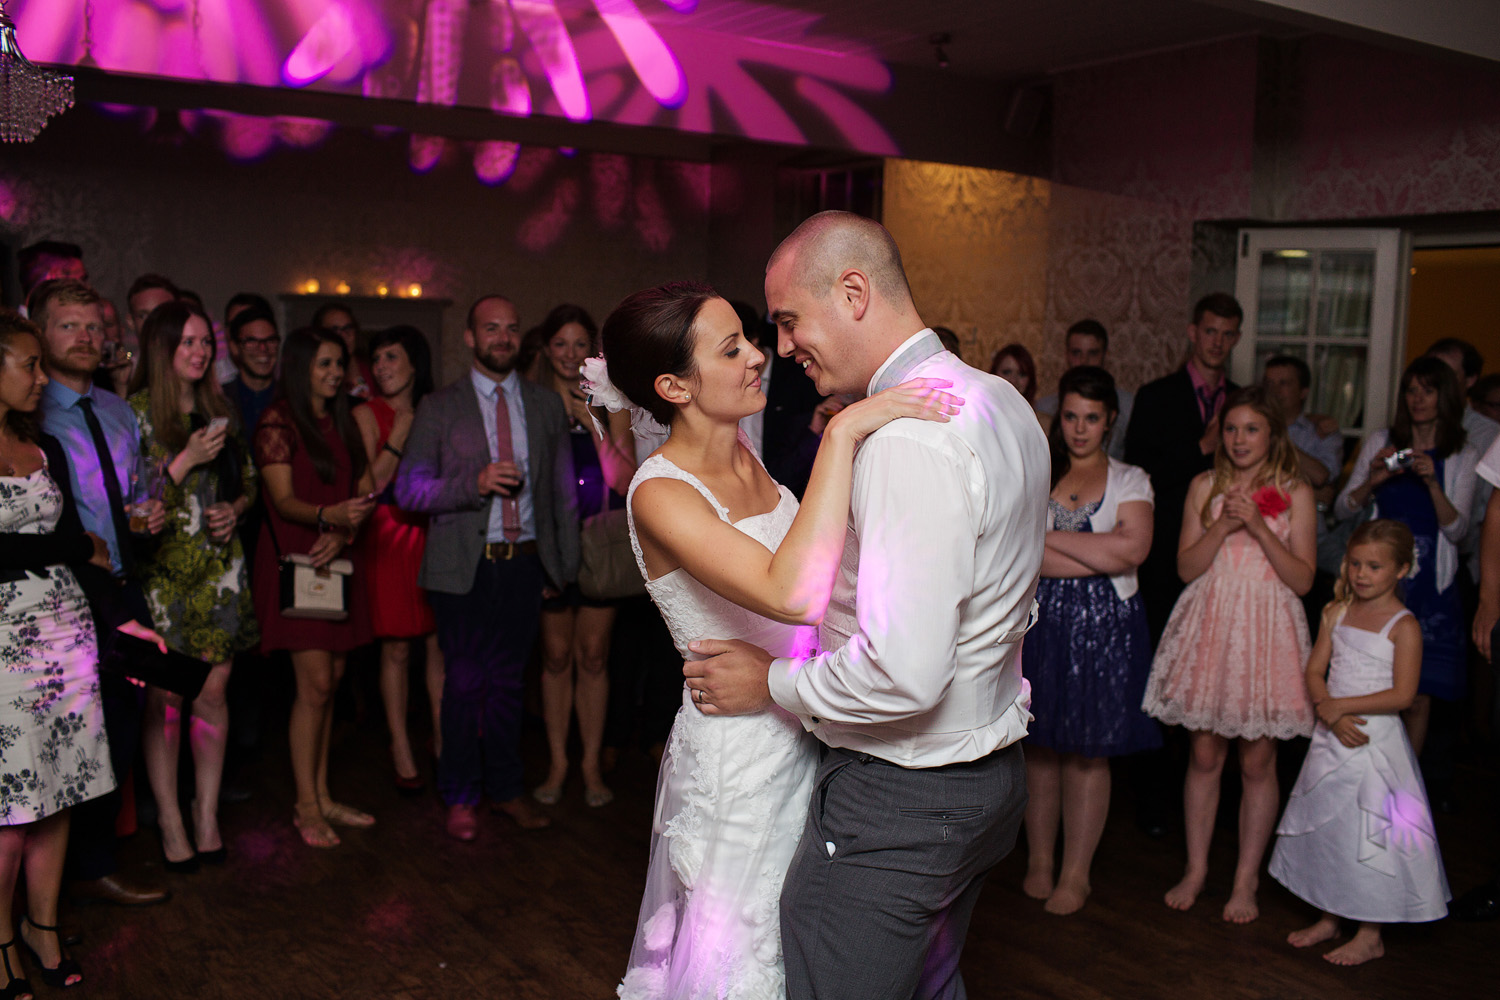 The_Elephant_Wedding_Photographer_Pangbourne_017.jpg